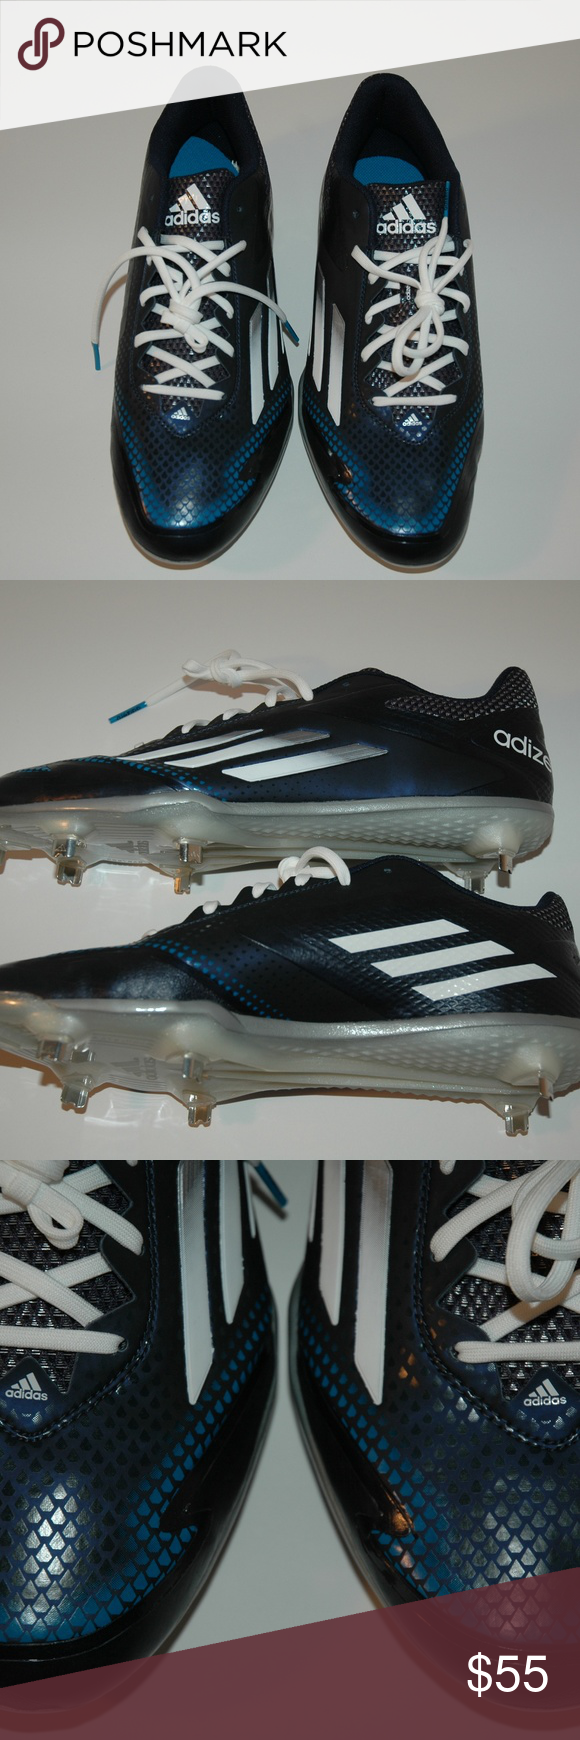 hot sale online cc3e8 df9e9 Adidas Adizero Afterburner Metal Baseball Cleats Adidas Adizero Afterburner  2.0 Metal Baseball Cleats Blue S84704 Sz 11. These are brand new and SOLD  ...